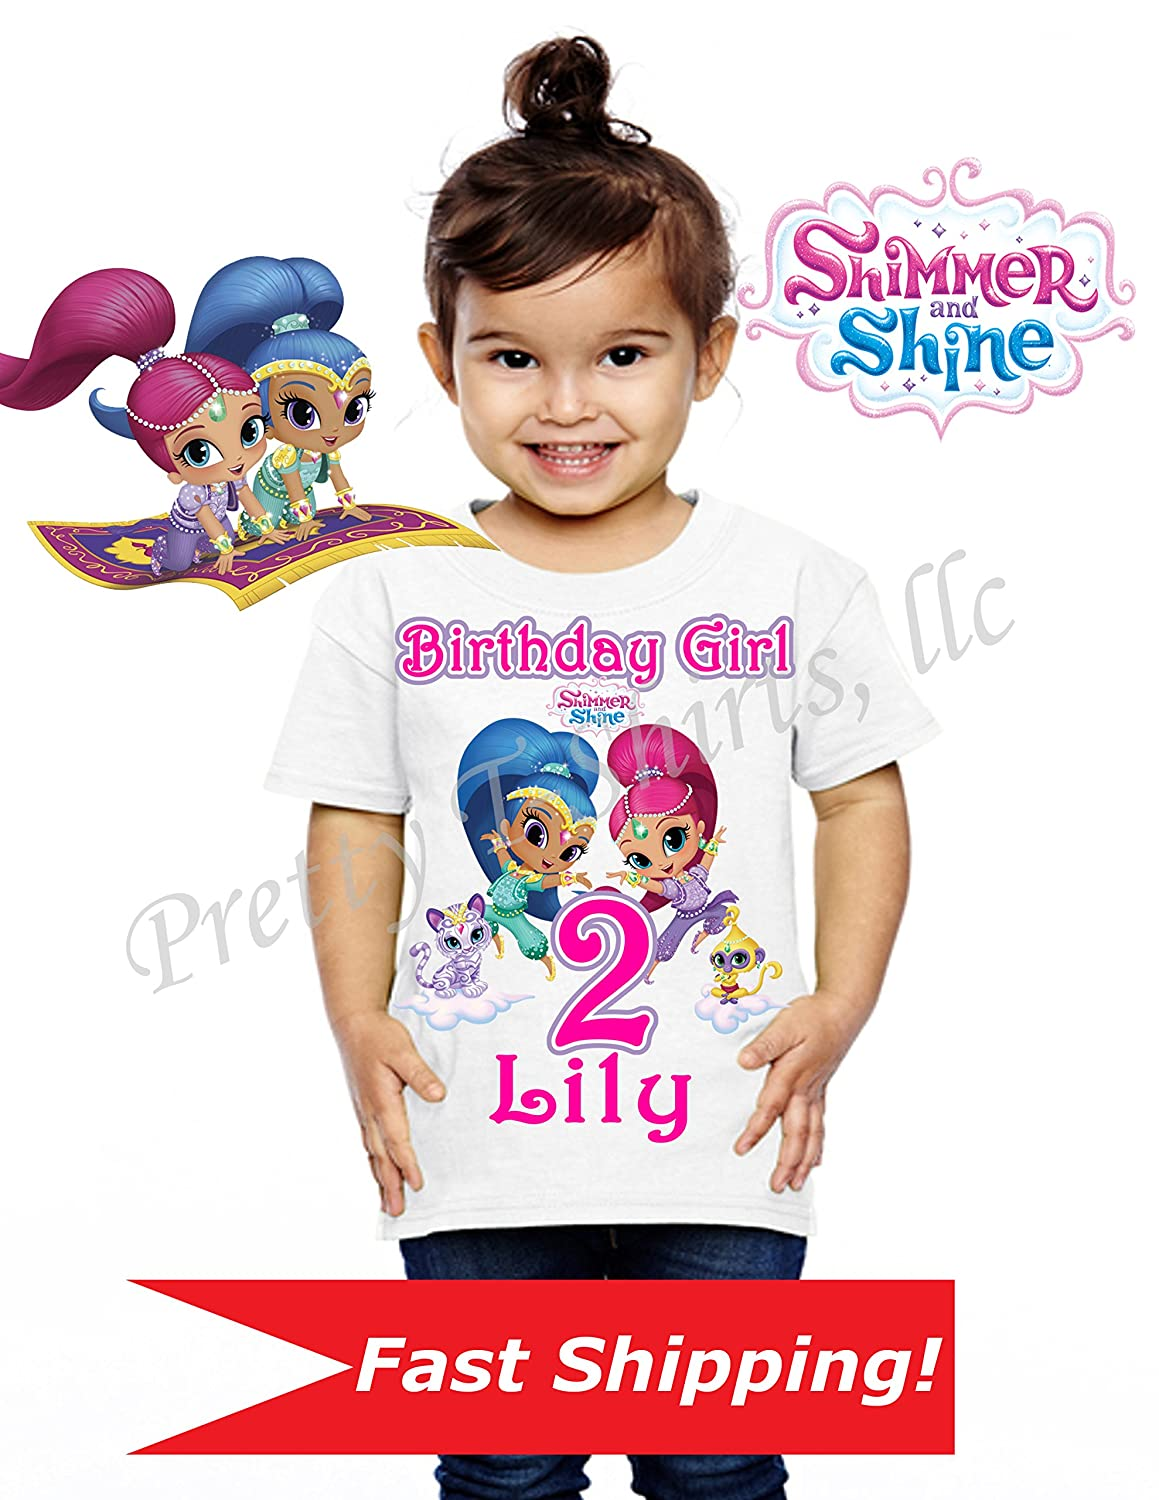 Shimmer and Shine Birthday Shirt, Family Birthday Shirts, Shimmer and Shine Shirt, Shimmer and Shine Party Favor, Add ANY name and Age, Shimmer and Shine, VISIT OUR SHOP!!